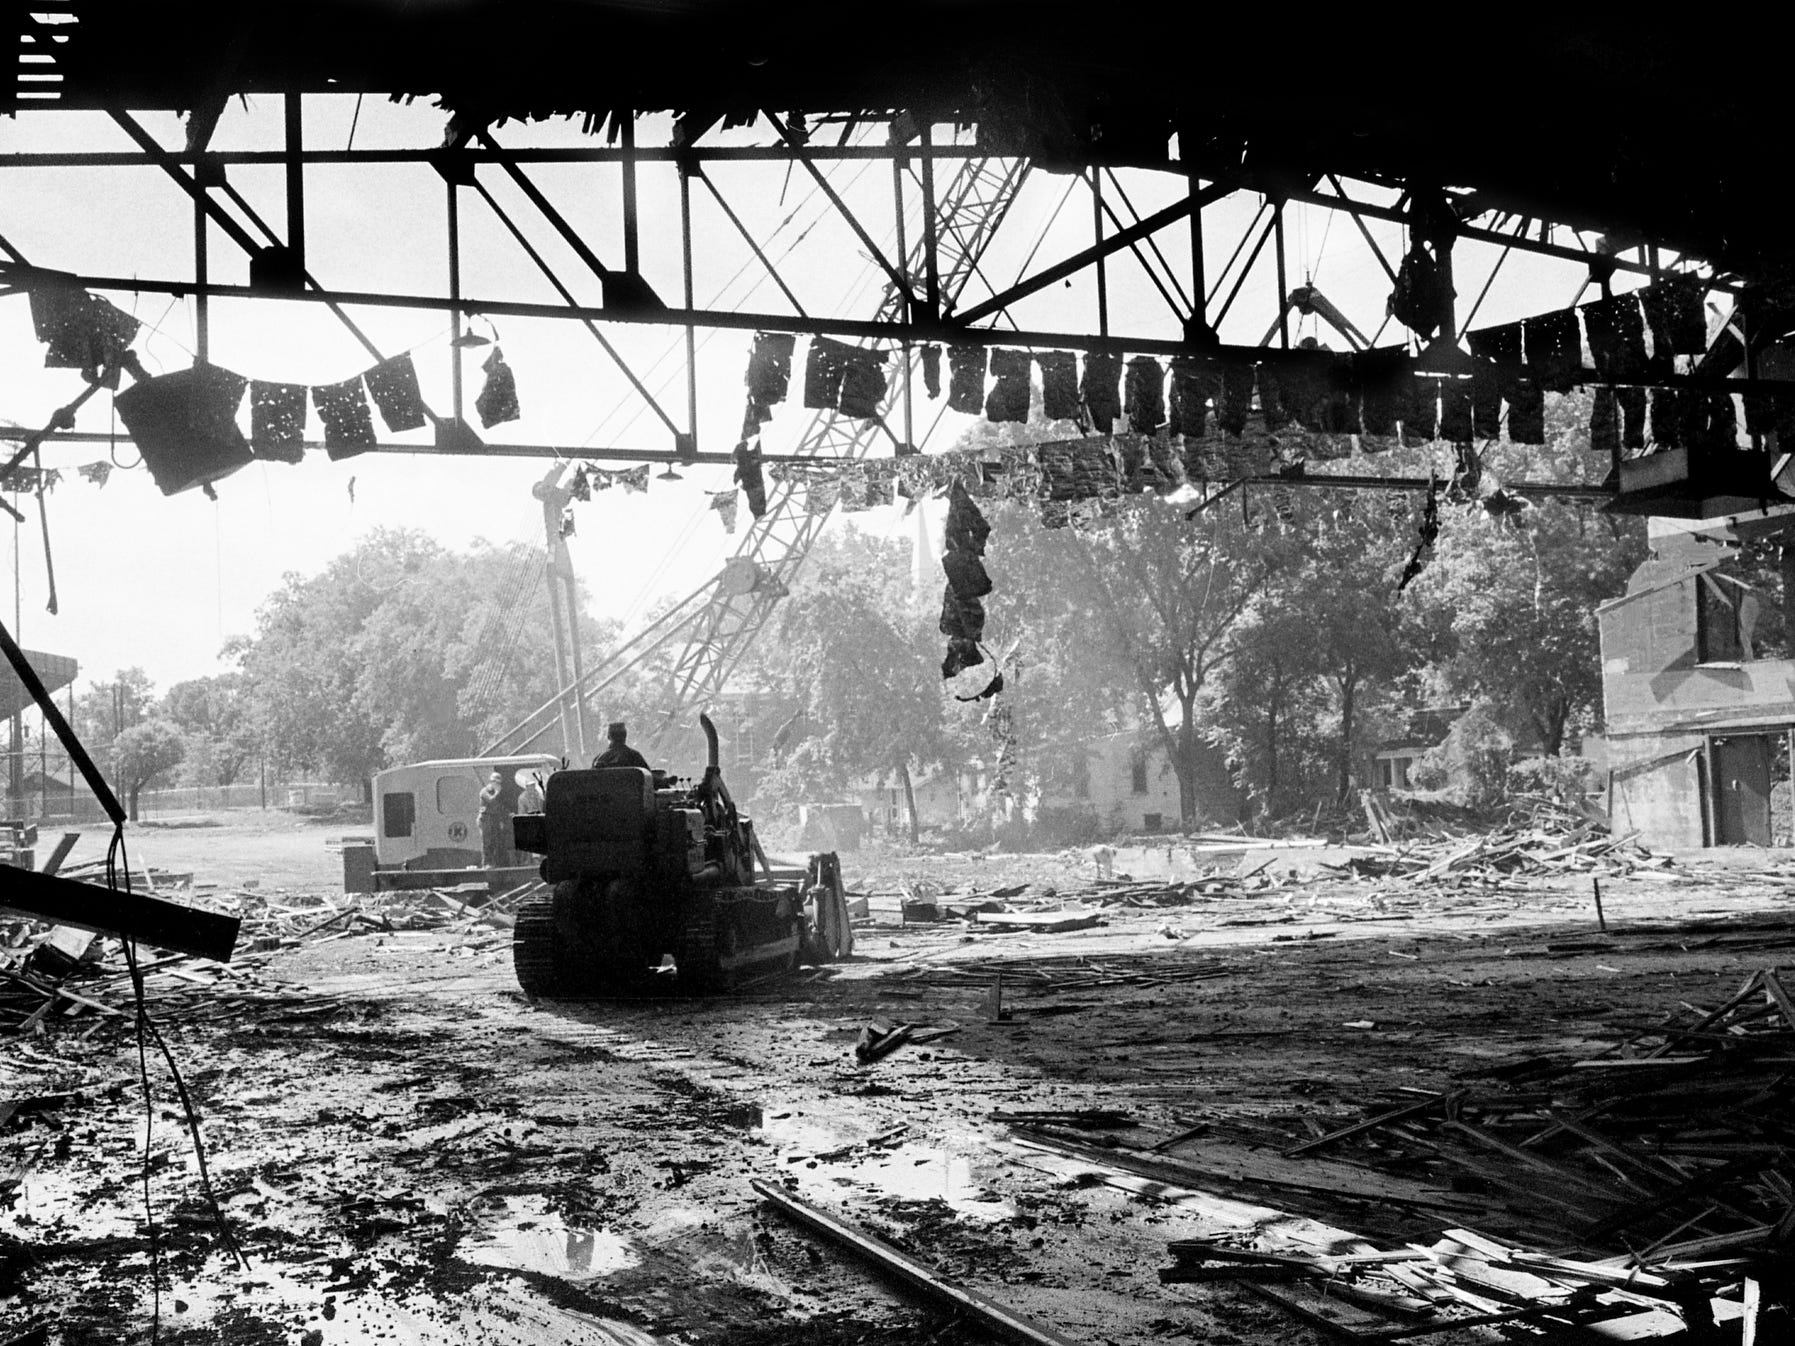 Bulldozers and cranes enter the back of the Hippodrome Arena, a landmark on West End Avenue in Nashville, on May 18, 1968. The Hippodrome is being torn down to make way for a new Holiday Inn to be built on the site near Centennial Park and the campus of Vanderbilt University.